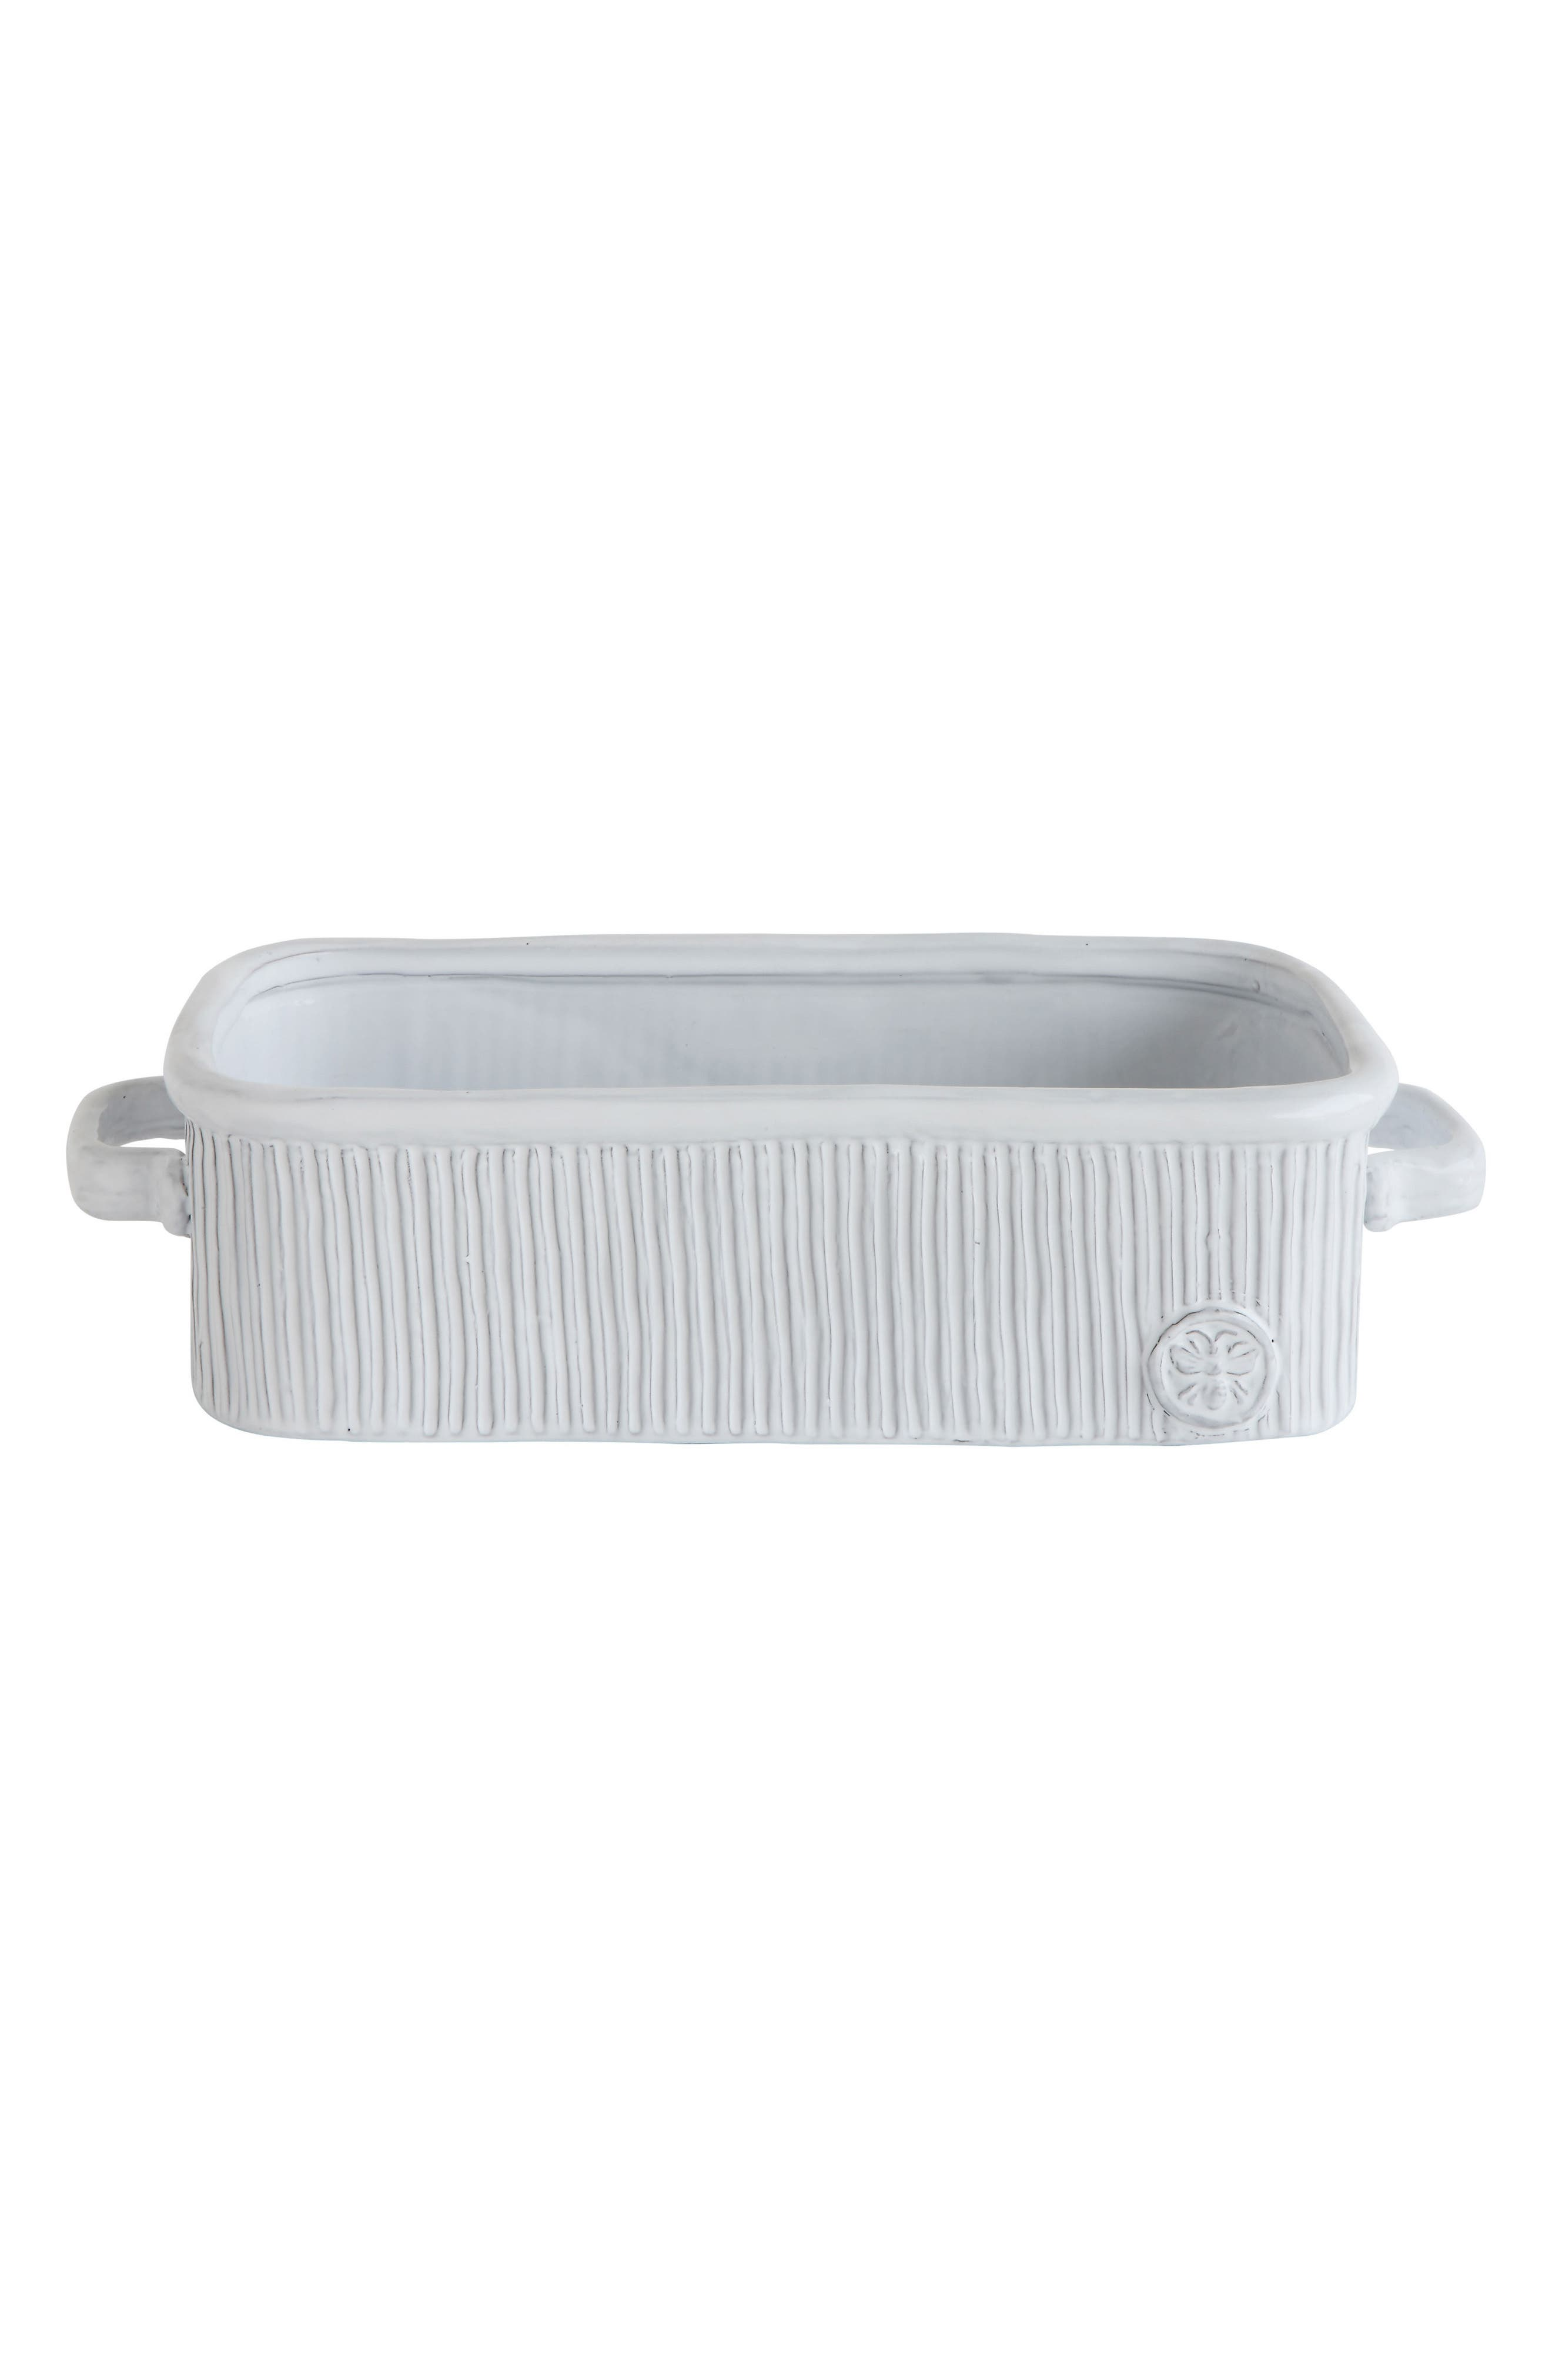 Ceramic Loaf Pan,                             Main thumbnail 1, color,                             White